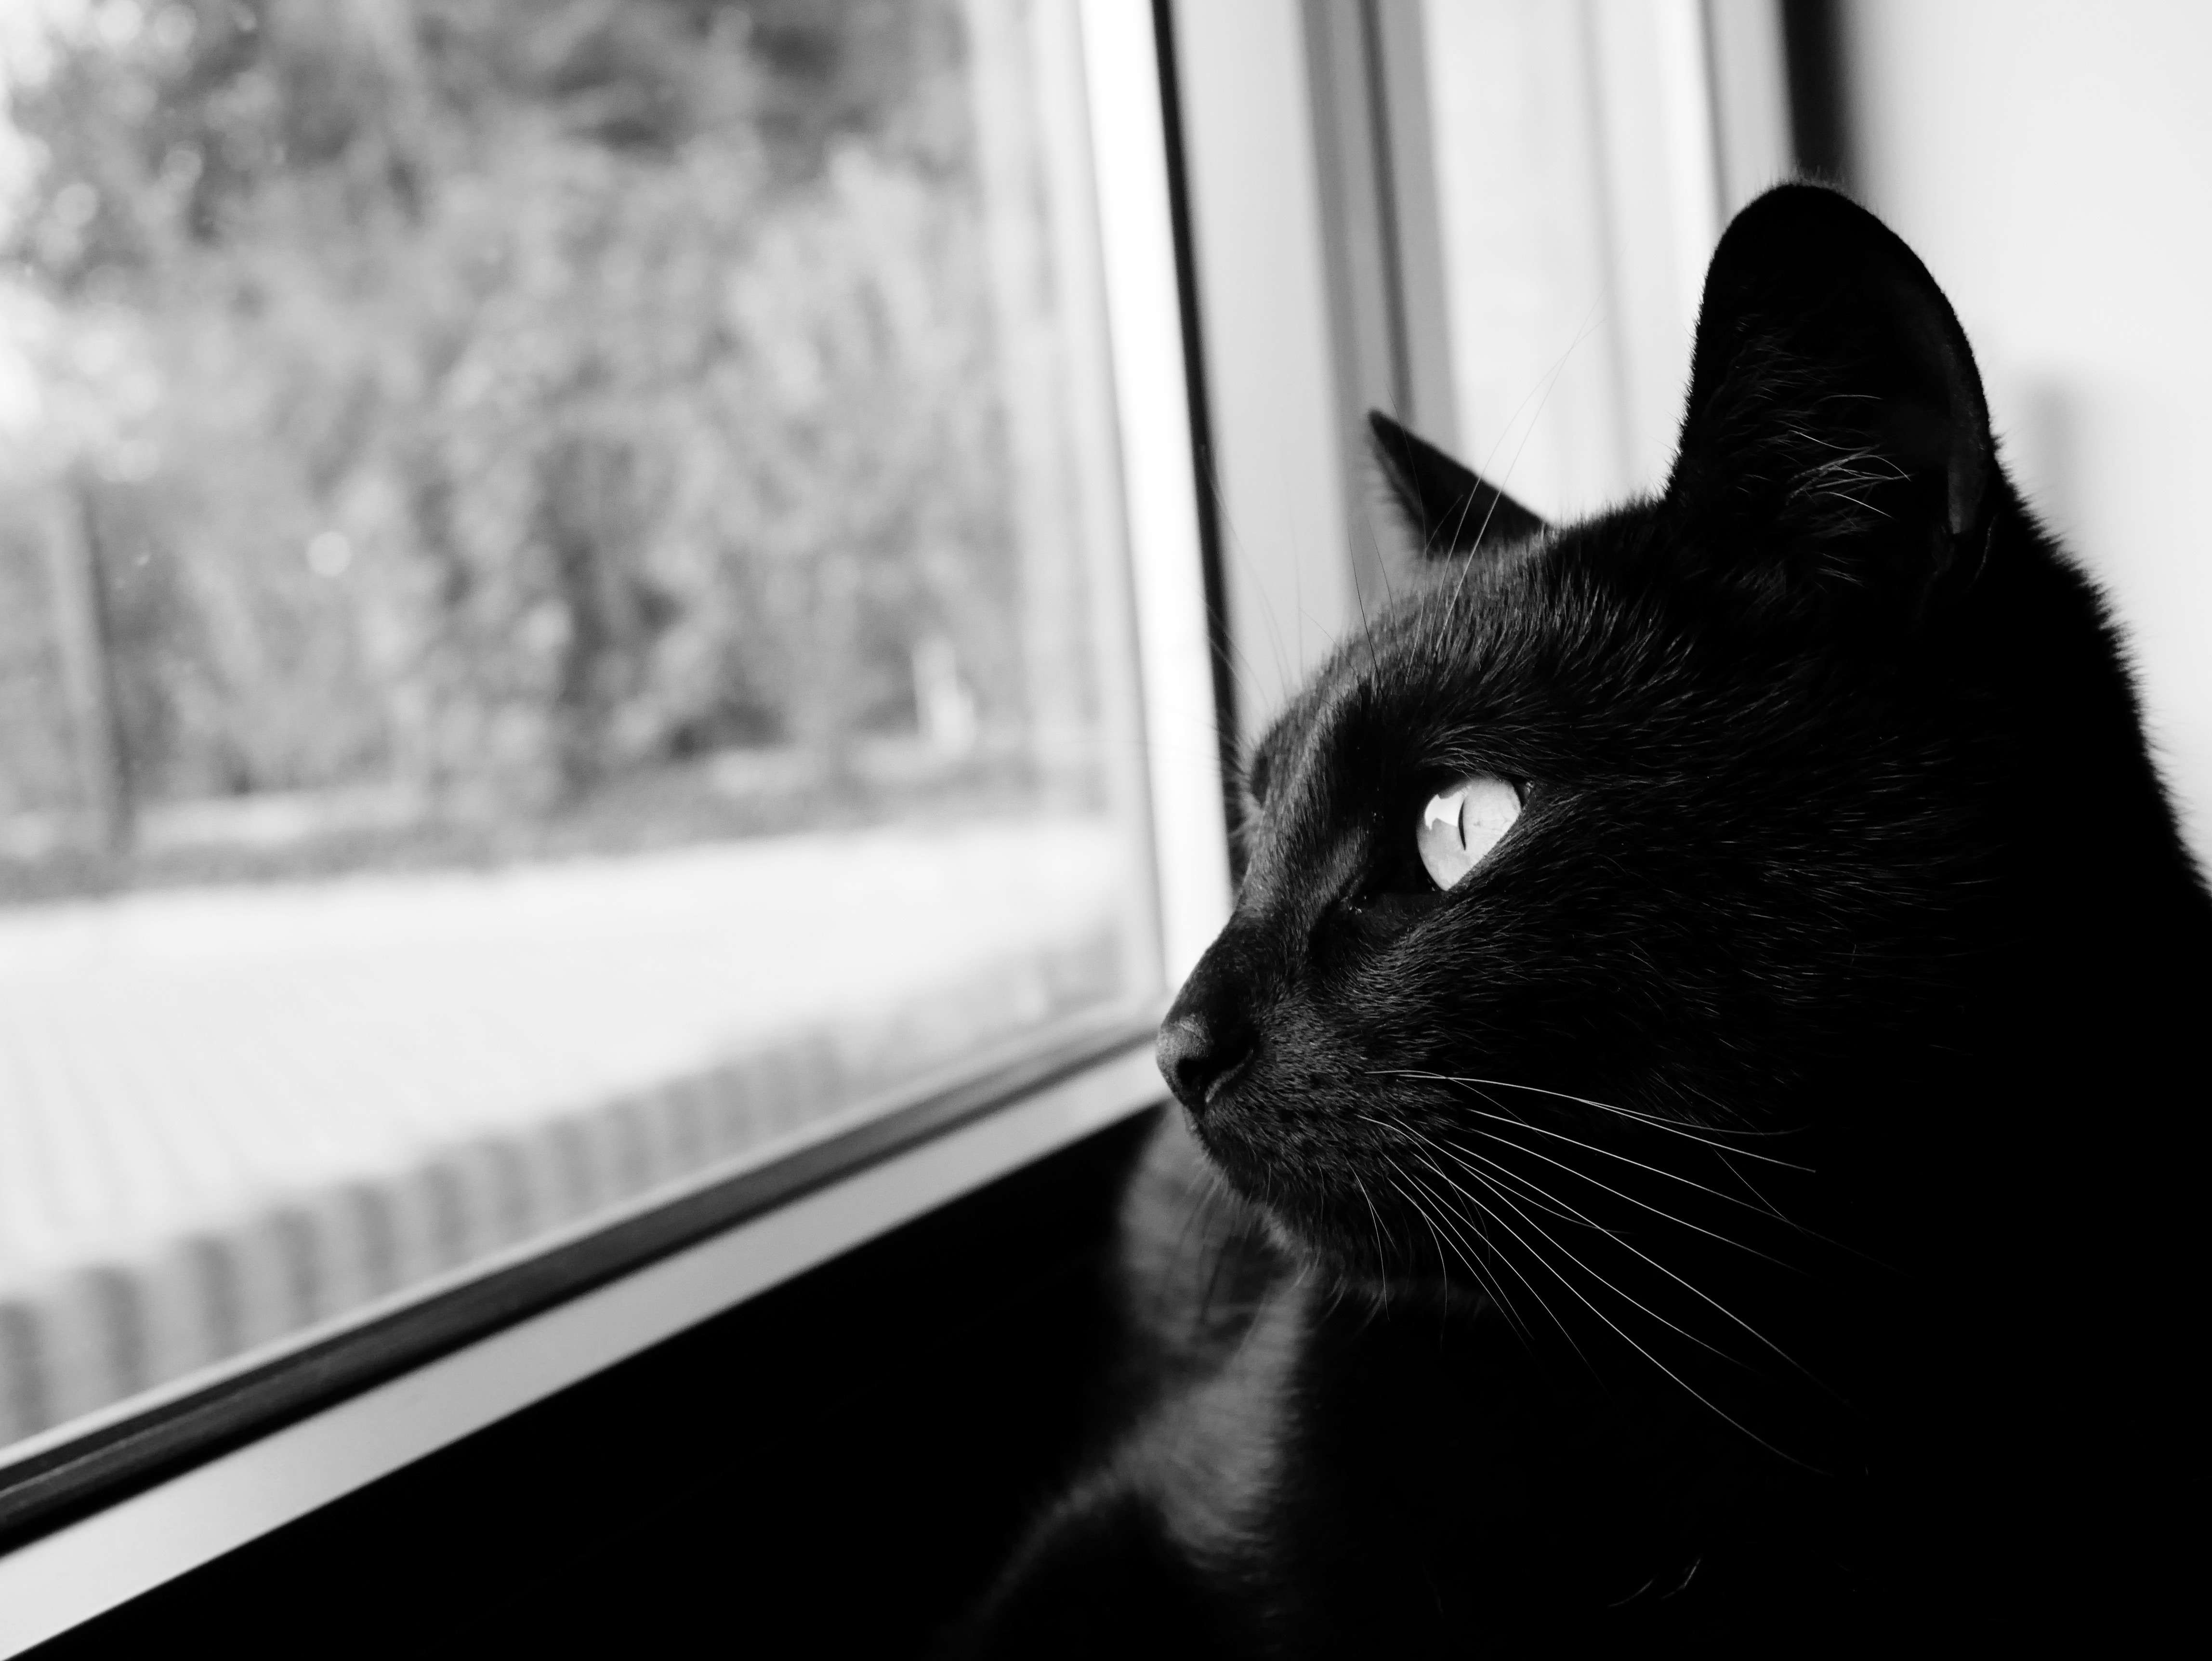 140158 download wallpaper Animals, Cat, Bw, Chb, Black Cat, Muzzle screensavers and pictures for free